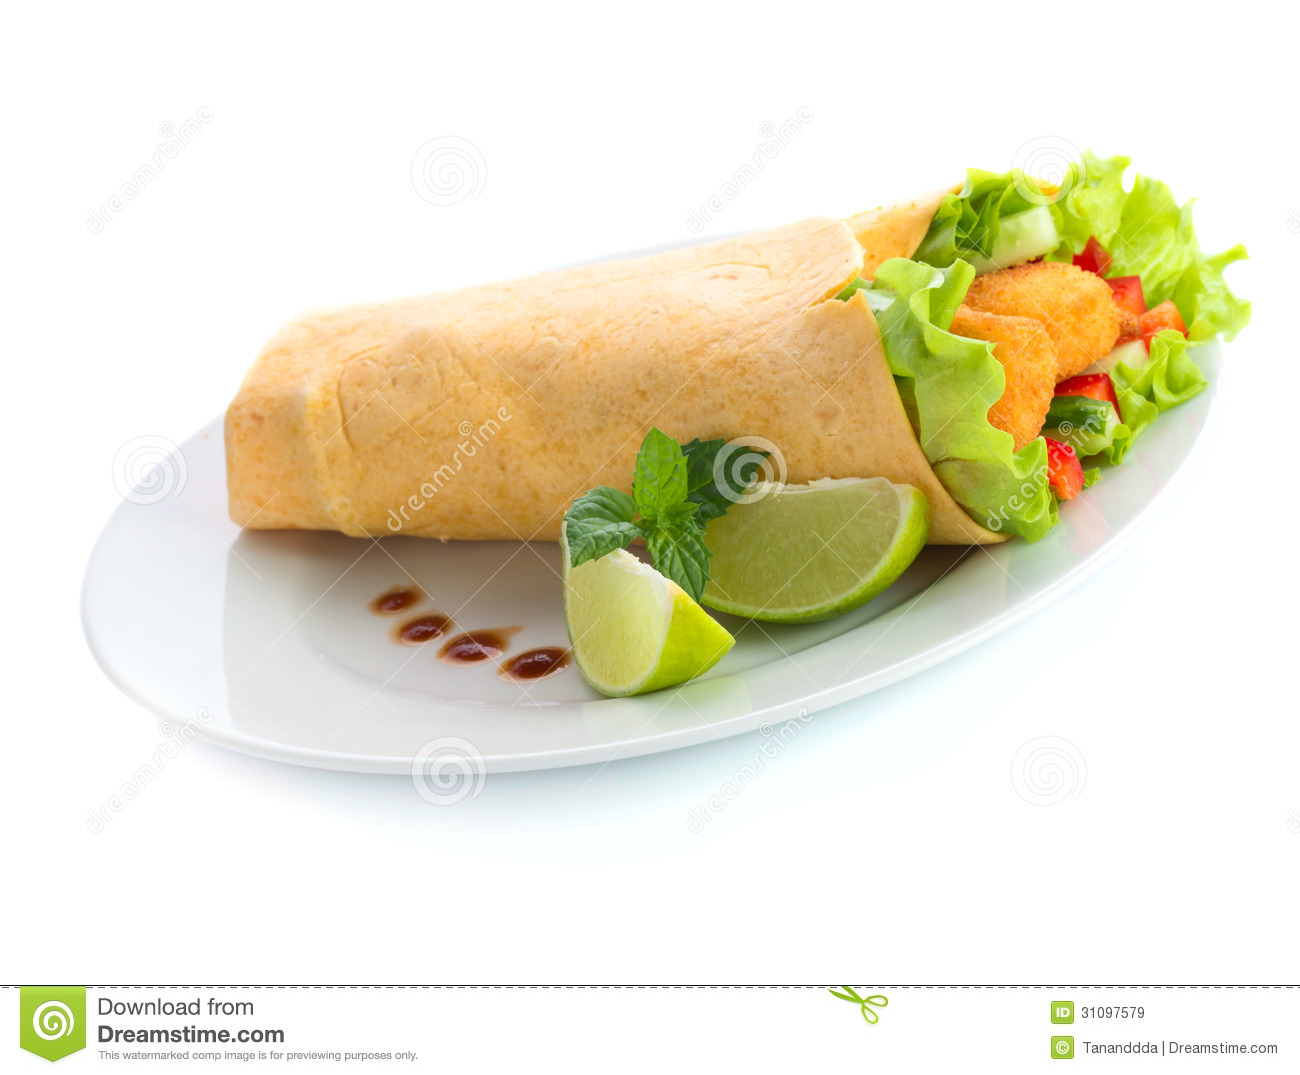 Chicken Tortilla Wrap With Lime And Chili Sauce Royalty Free Stock ...